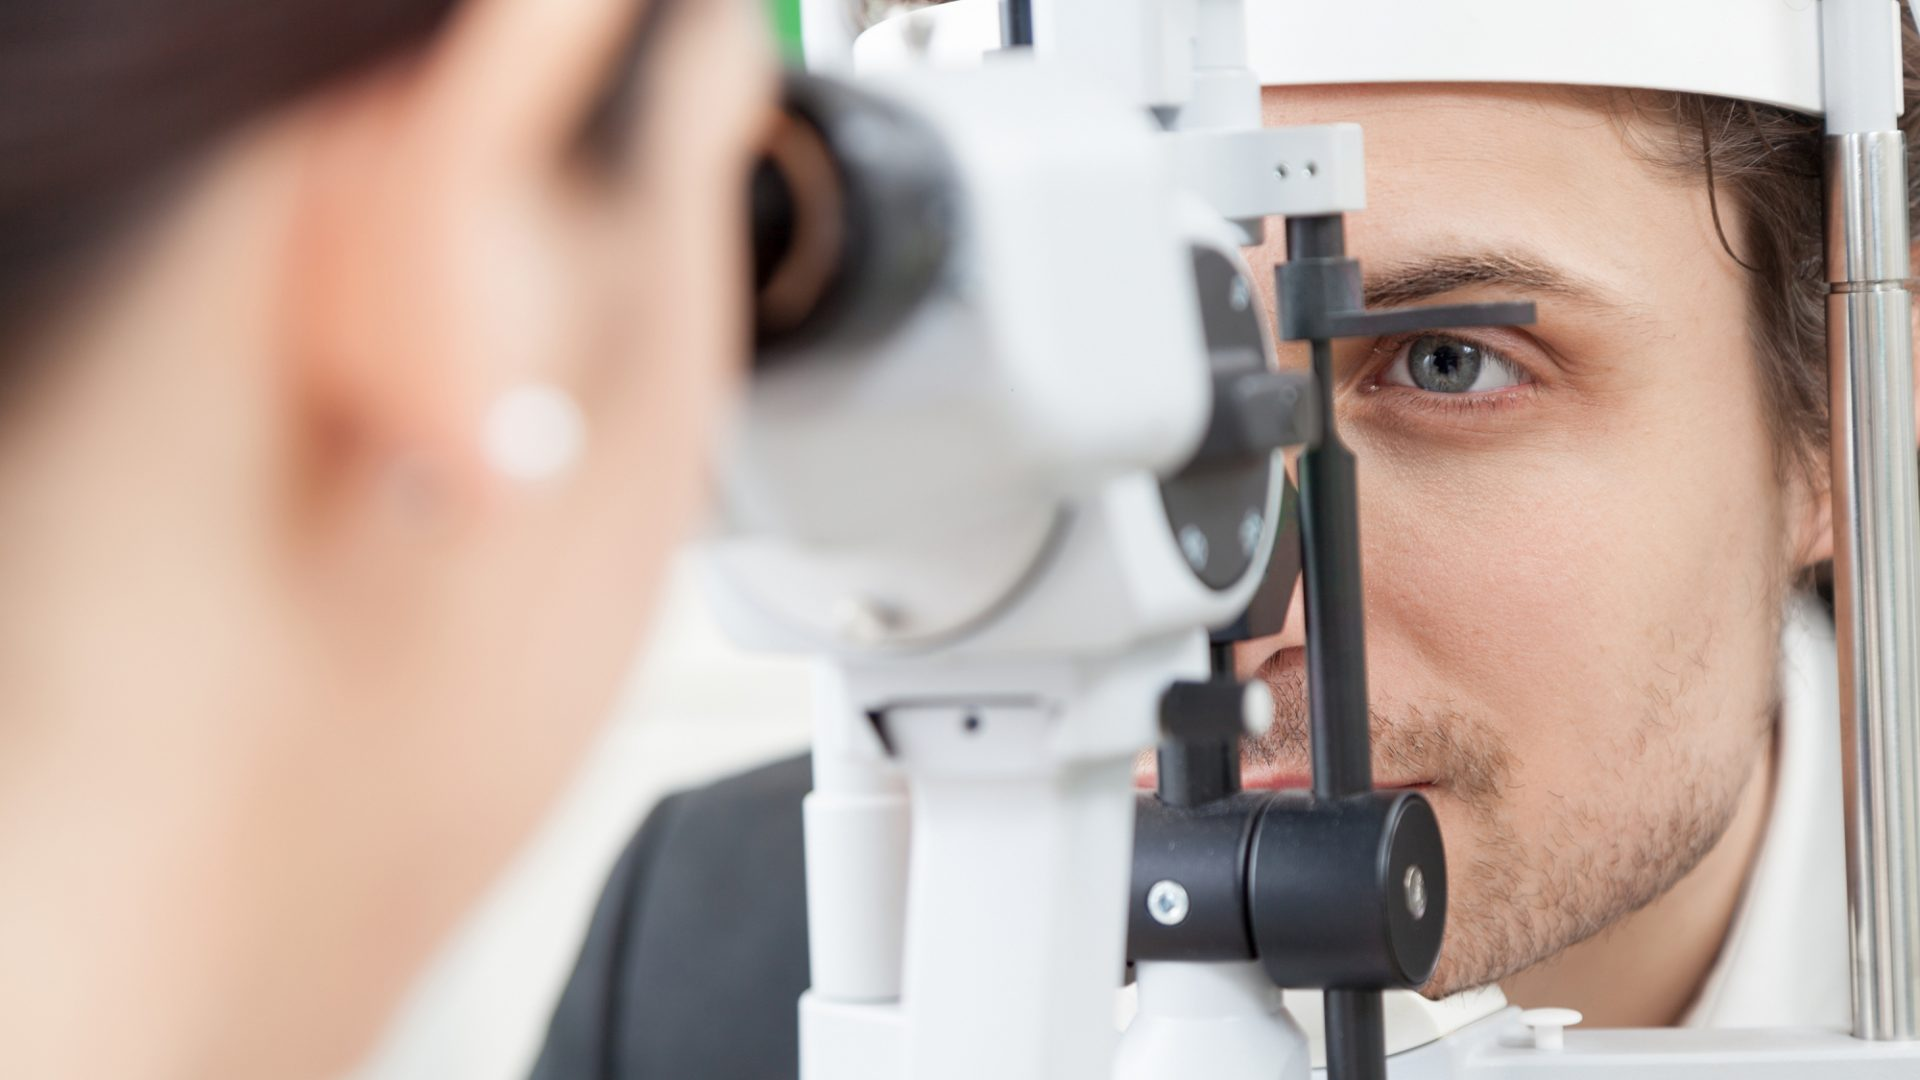 A photo of a person having an eye test